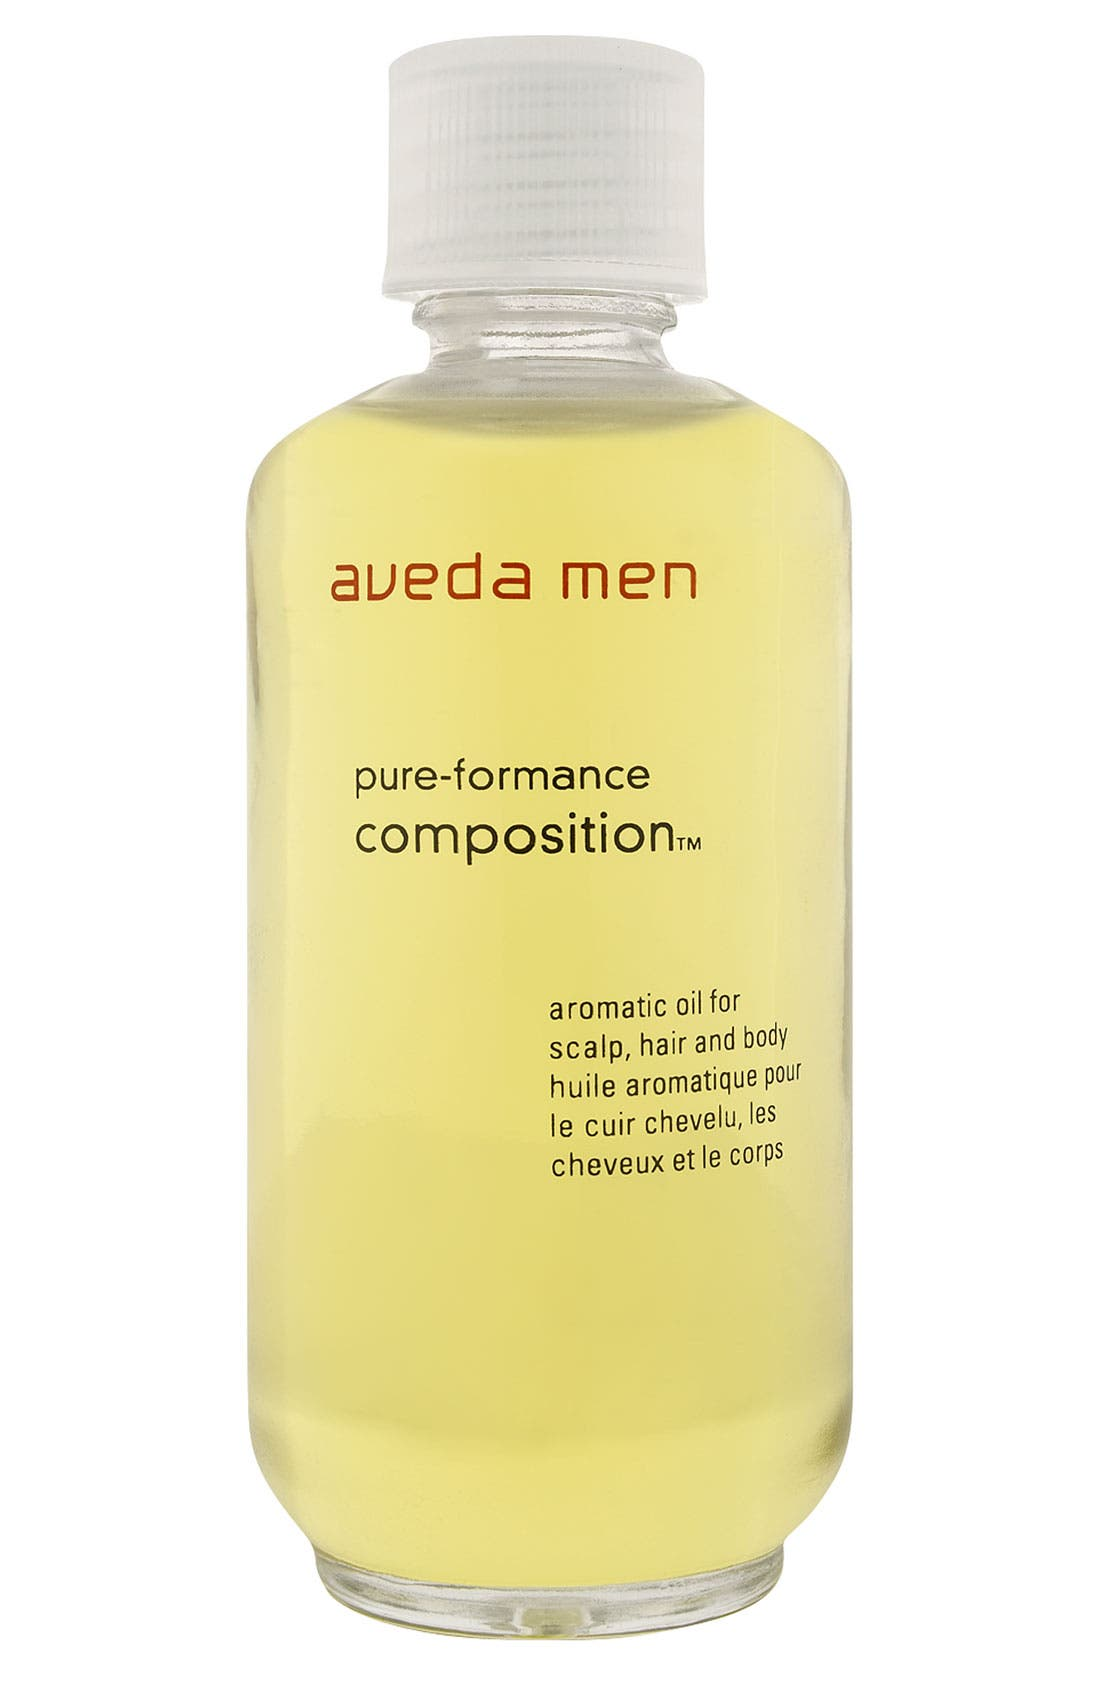 Aveda Men 'pure-formance™' composition™ Essential Oil